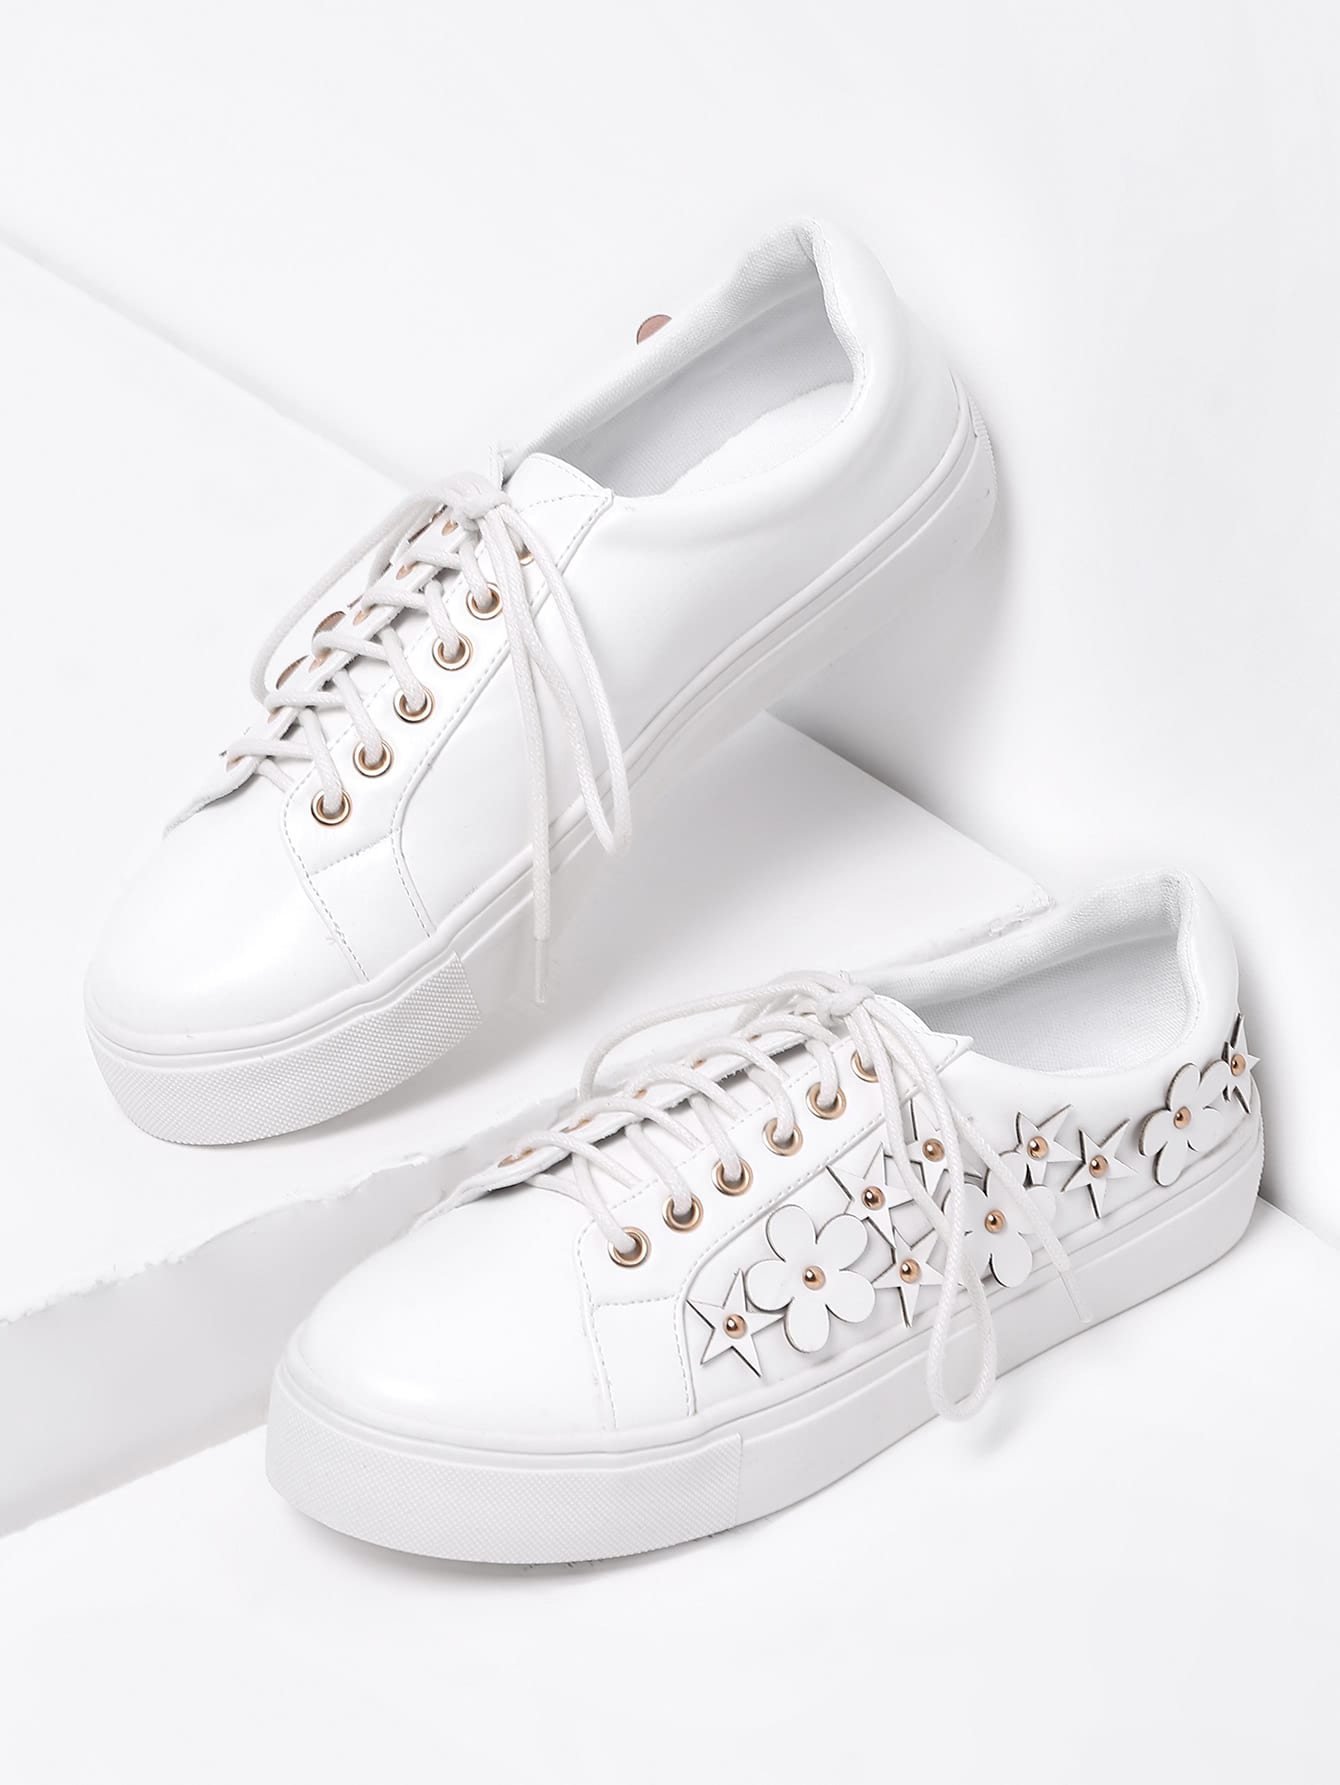 Flower Embellished Lace Up Faux Leather Sneakers exquisite candy color faux gem embellished flower pattern bracelet for women